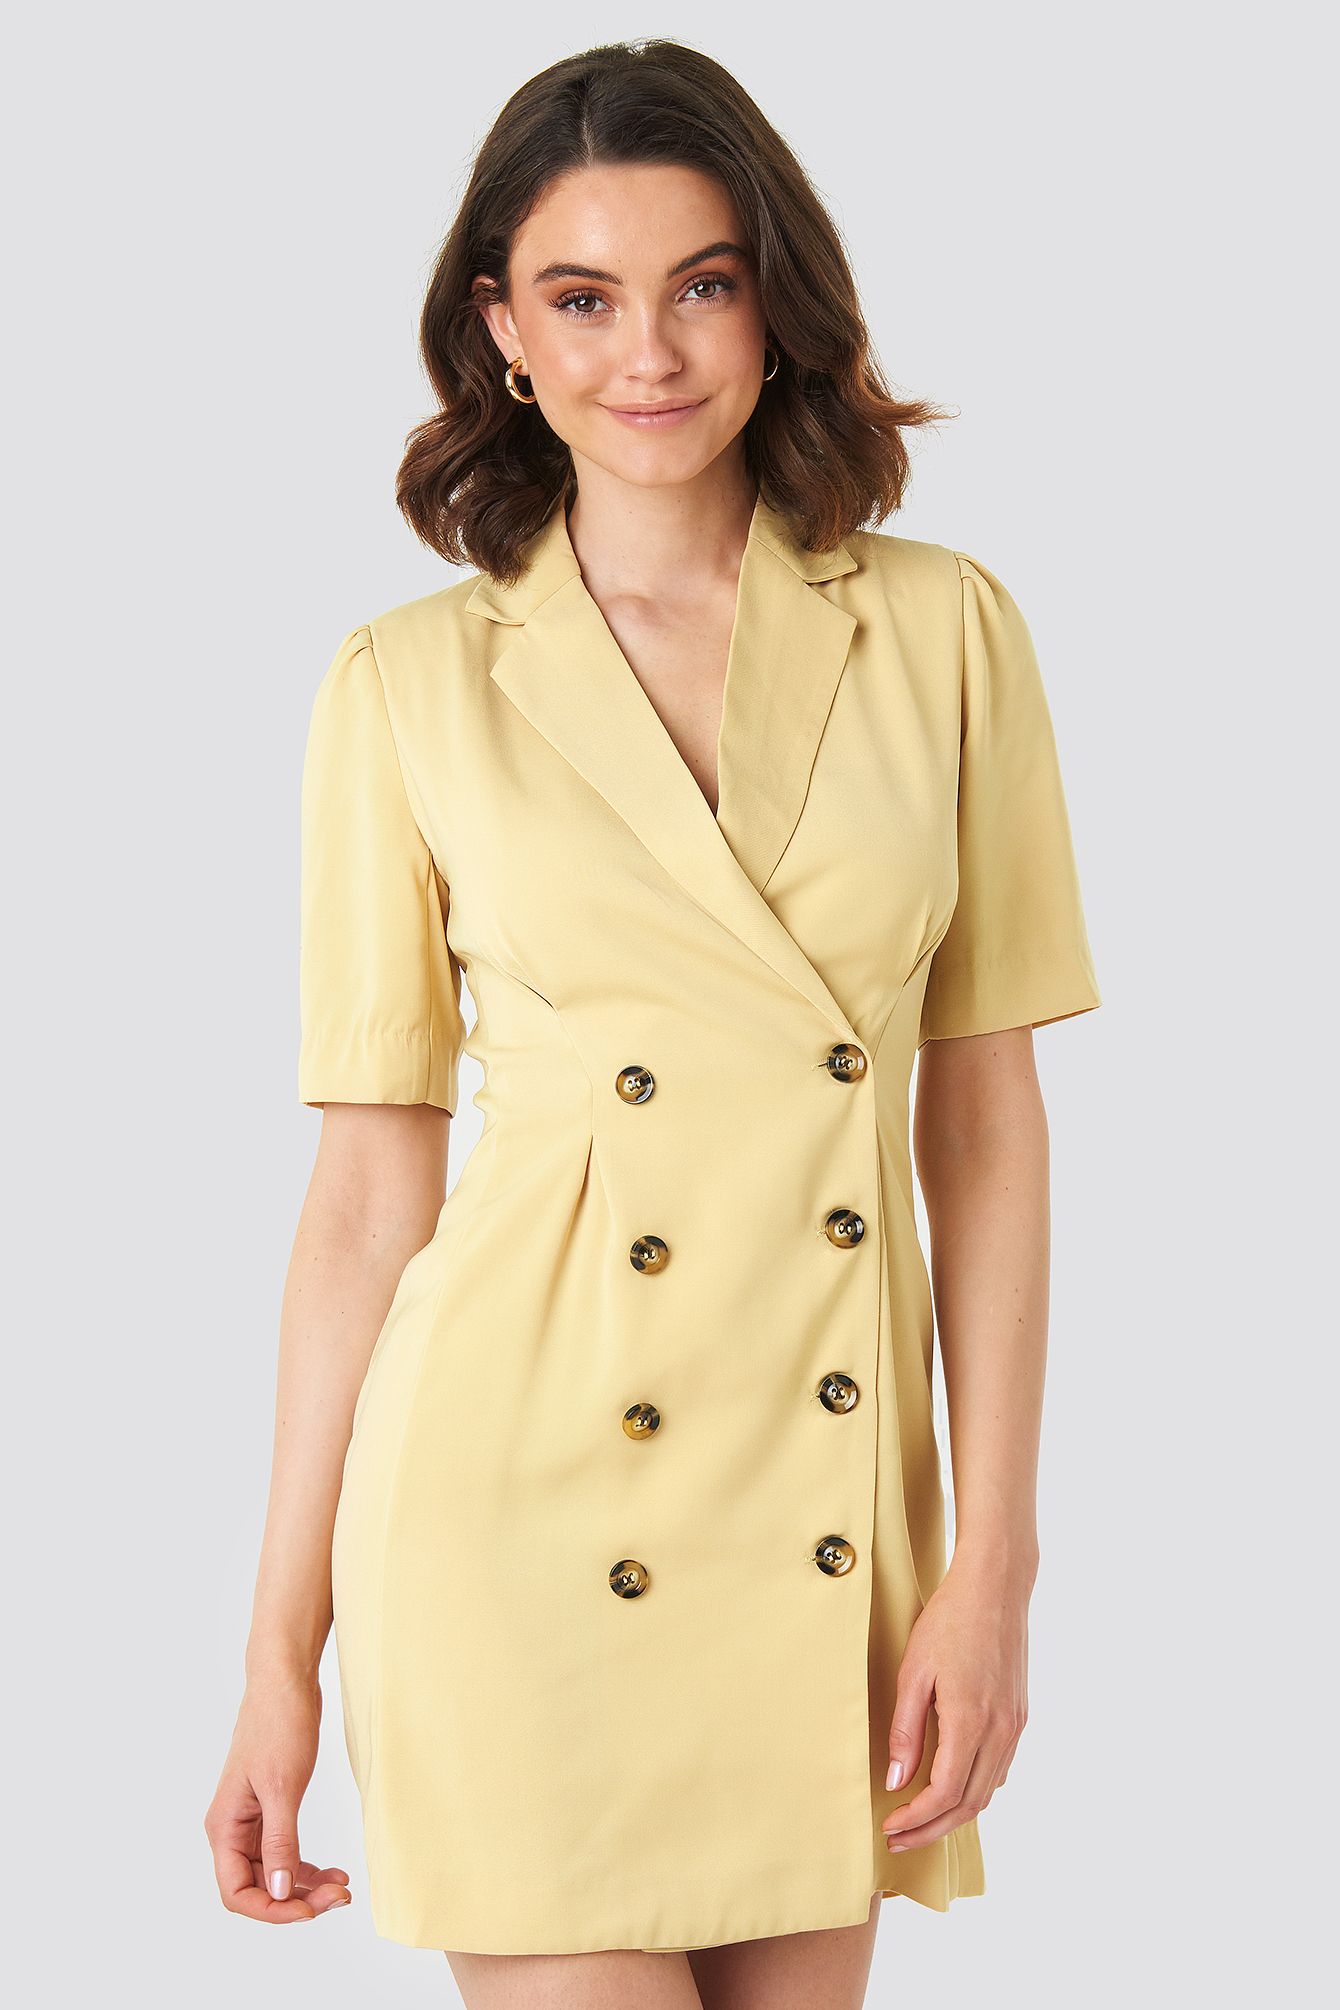 Light Yellow Short Sleeve Blazer Dress